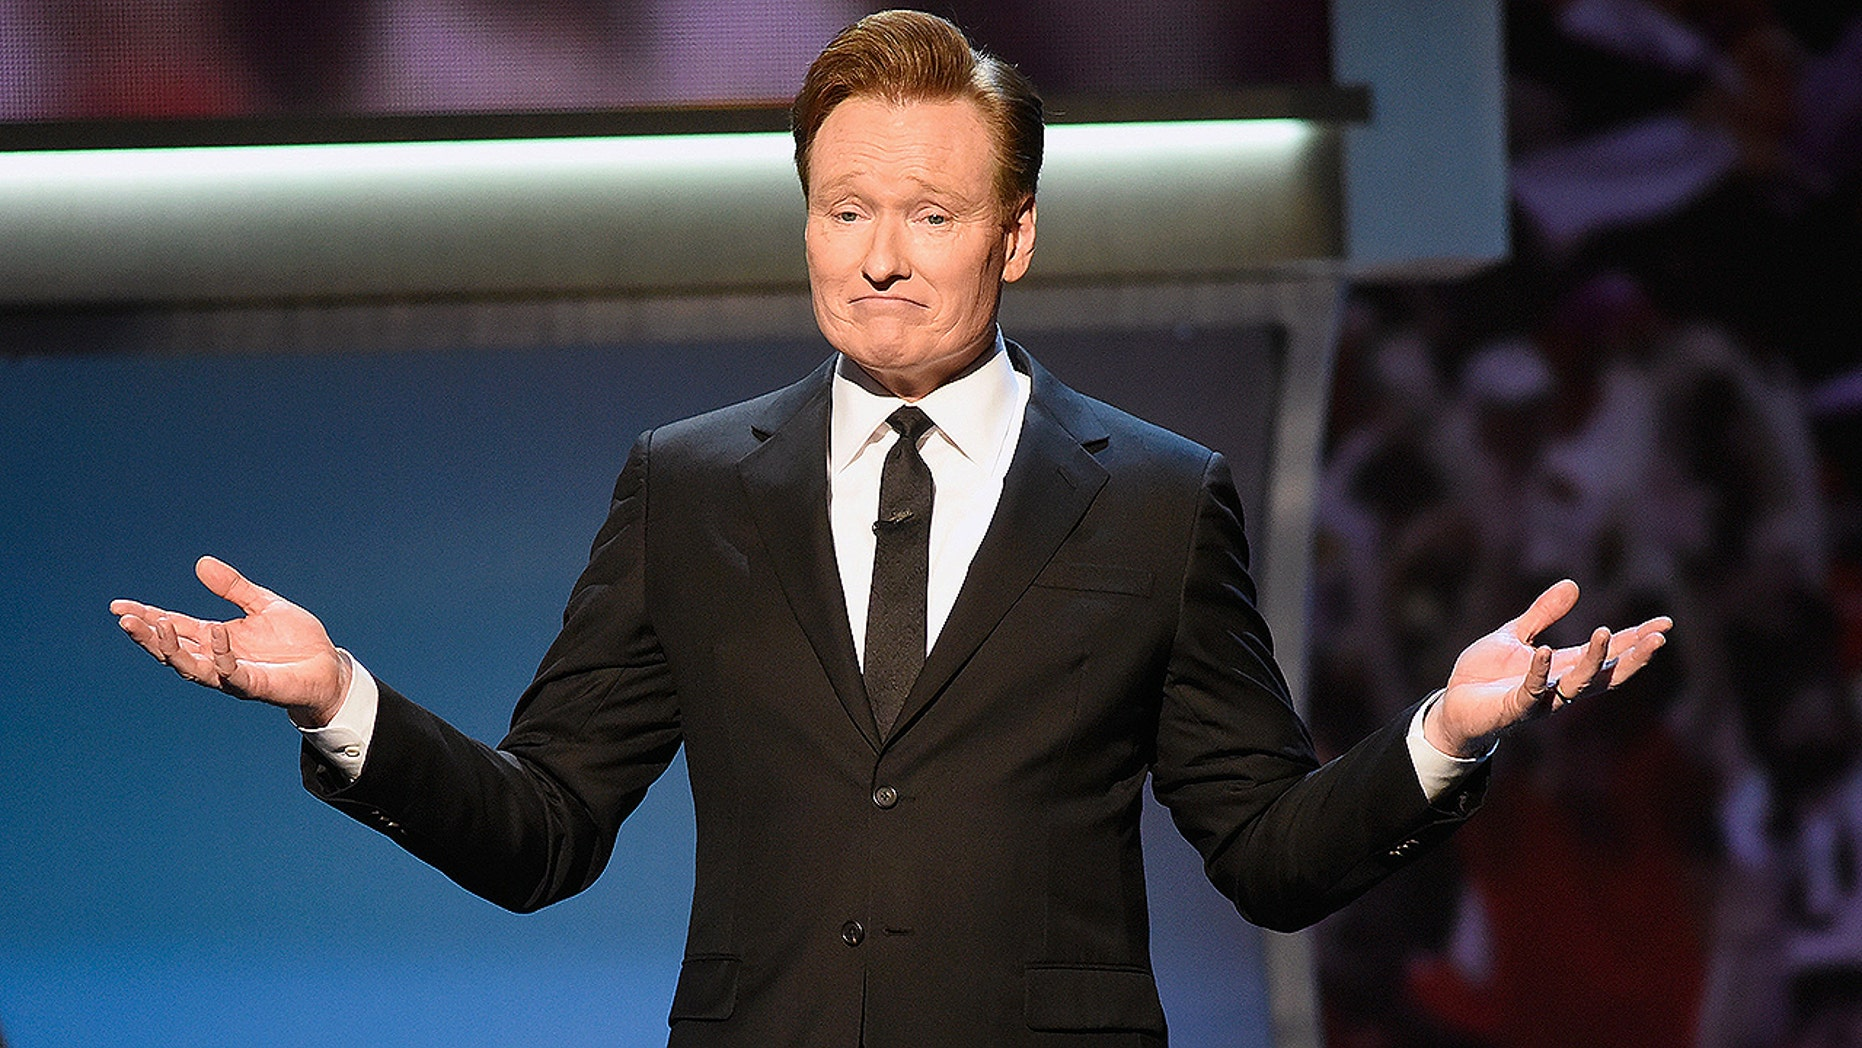 Conan O'Brien is accused of stealing jokes in a lawsuit filed in California.